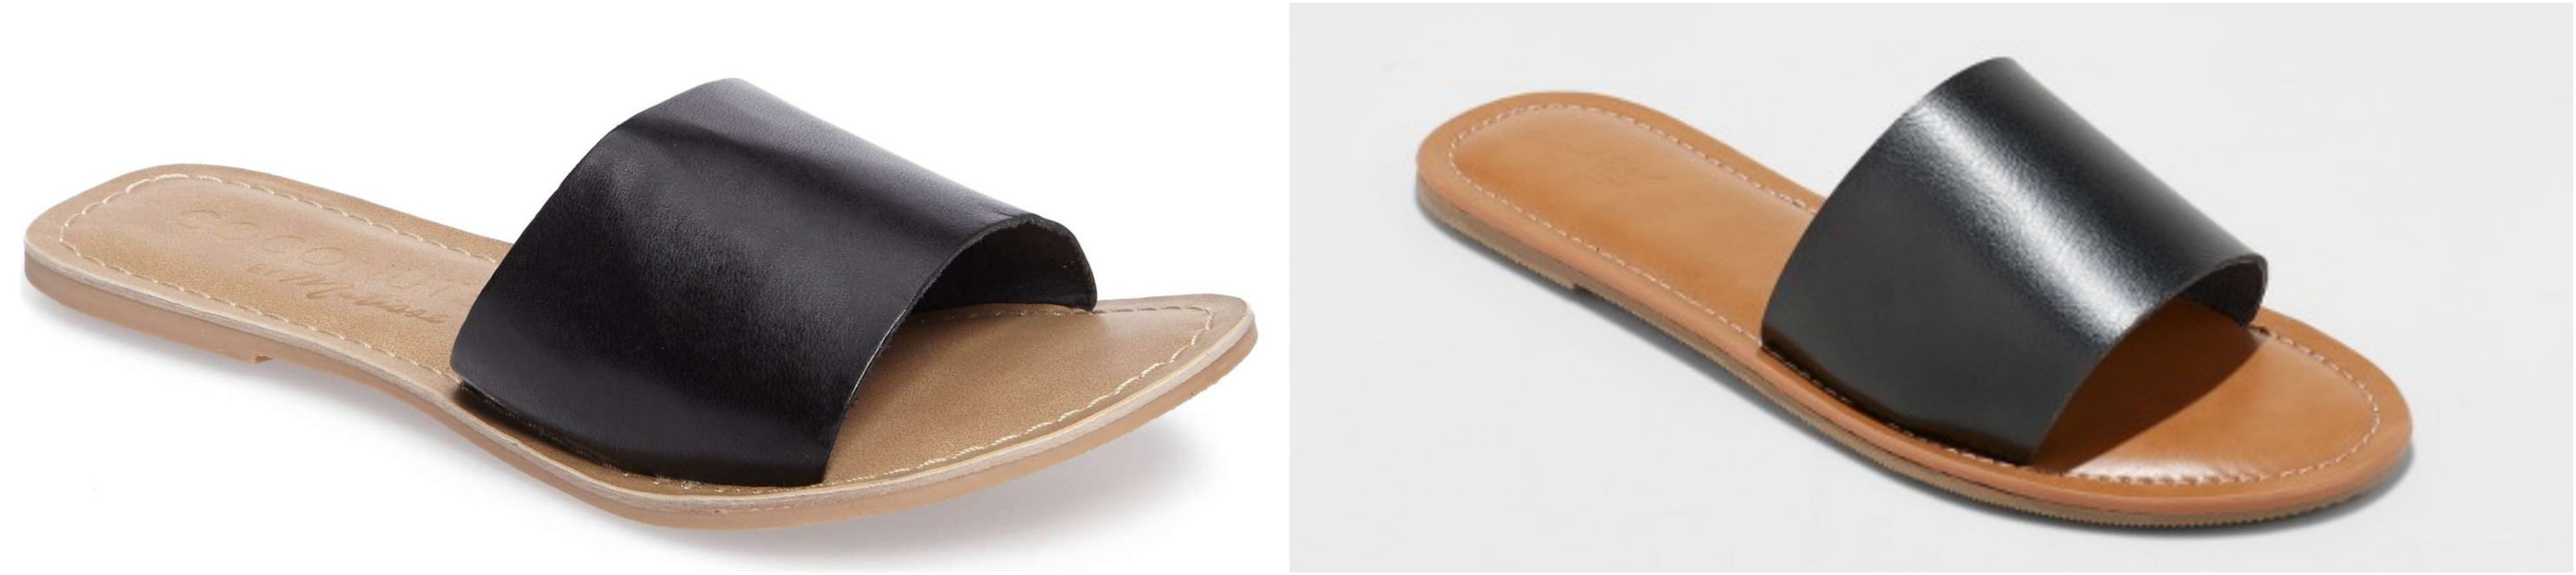 Leather Slides - Best Target Shoe Dupes - Communikait by Kait Hanson